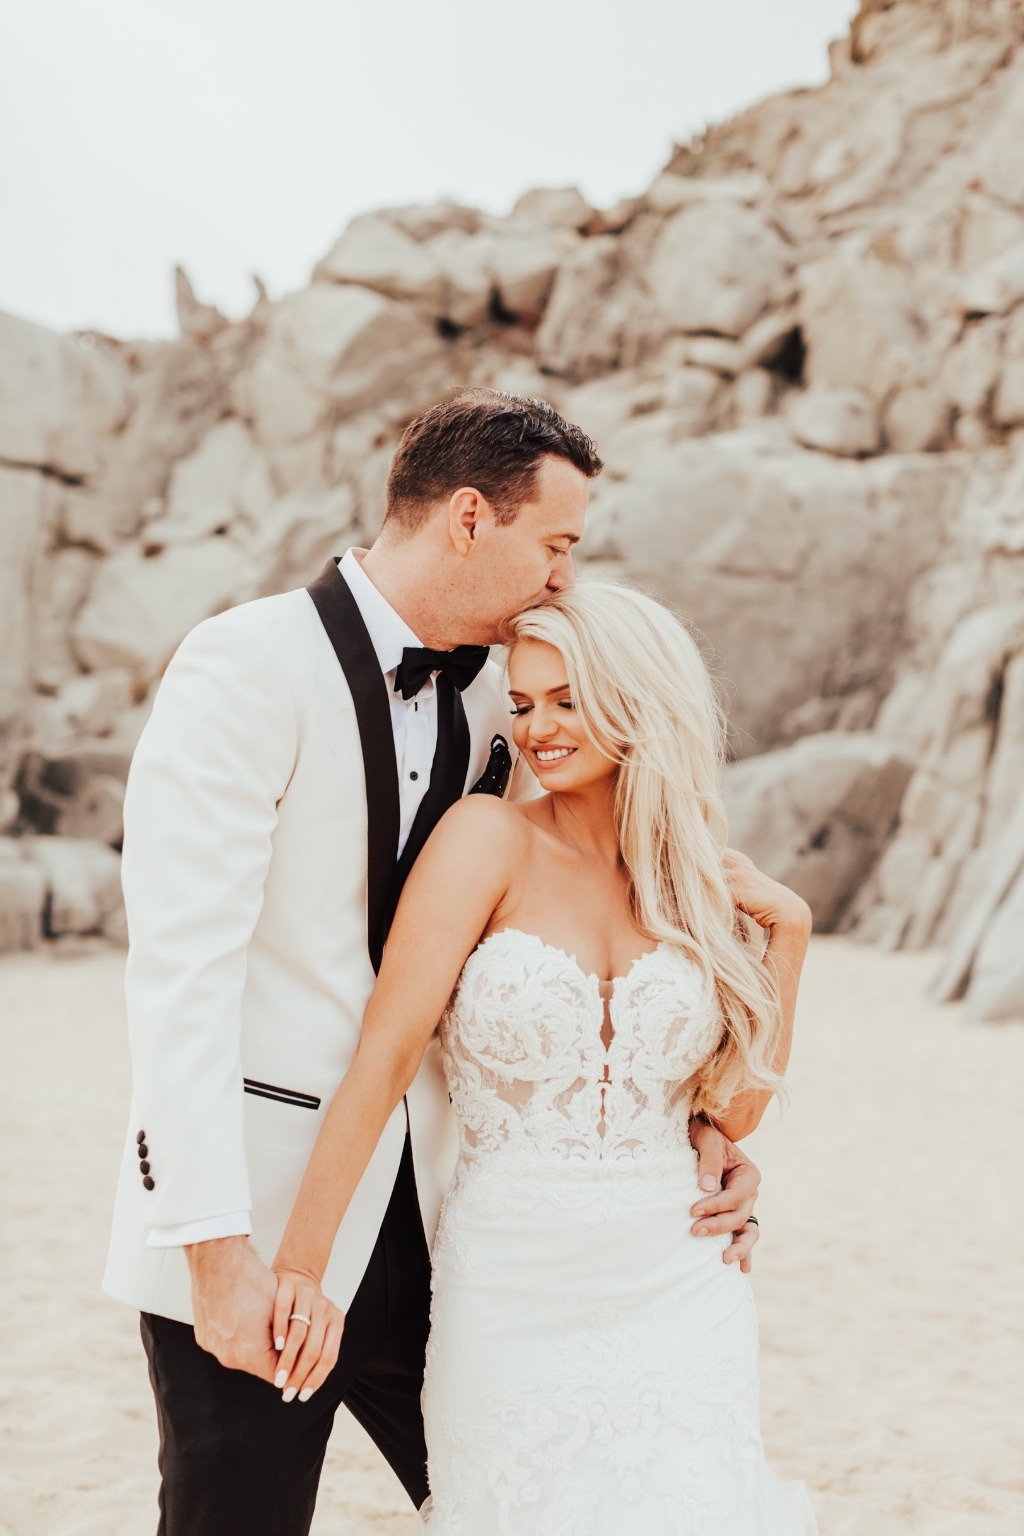 Romantic beach wedding in Cabo